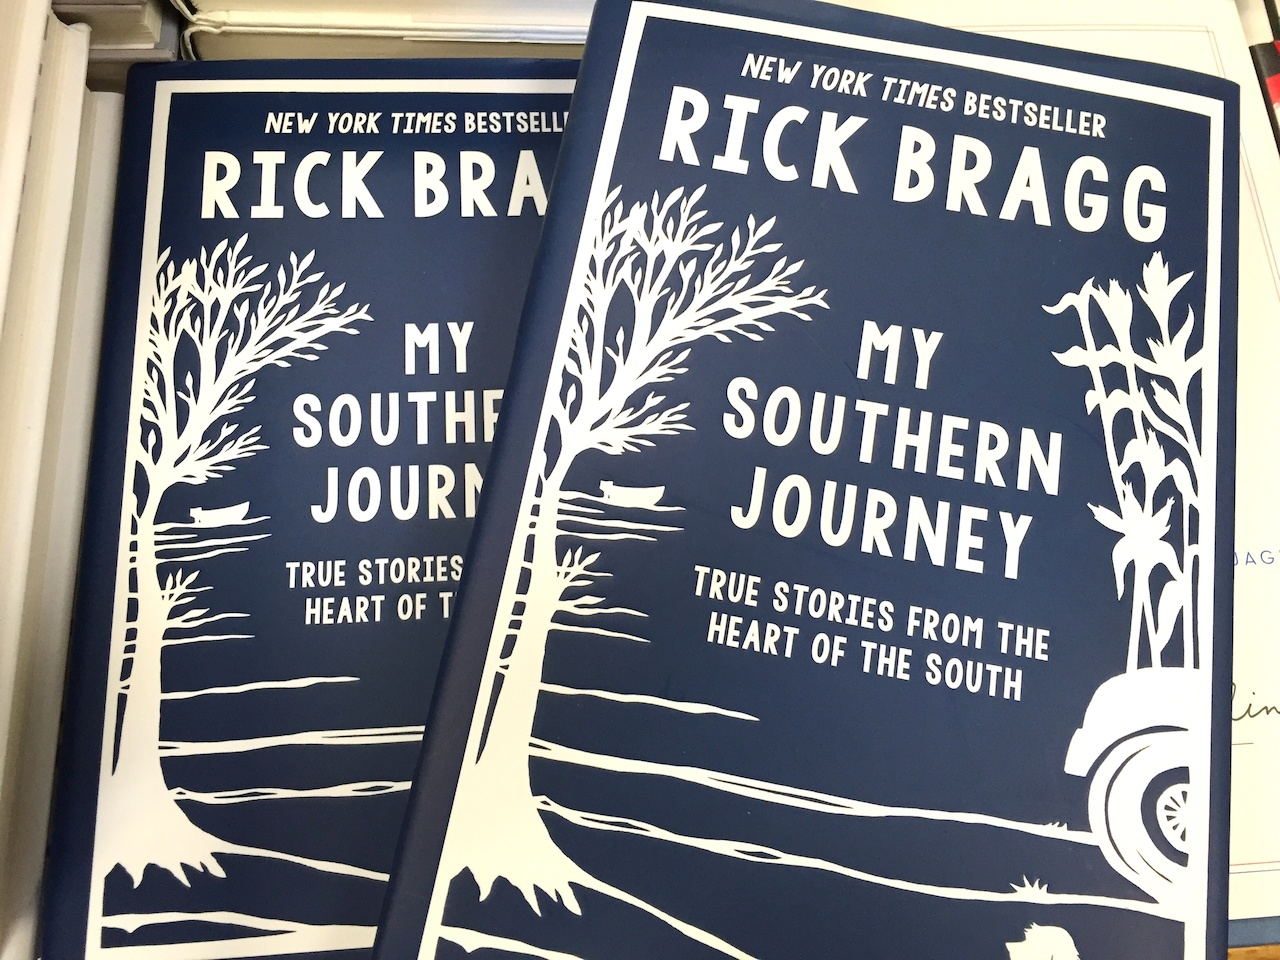 My Southern Journey by Rick Bragg, $18.99 at The Booksellers at Laurelwood.